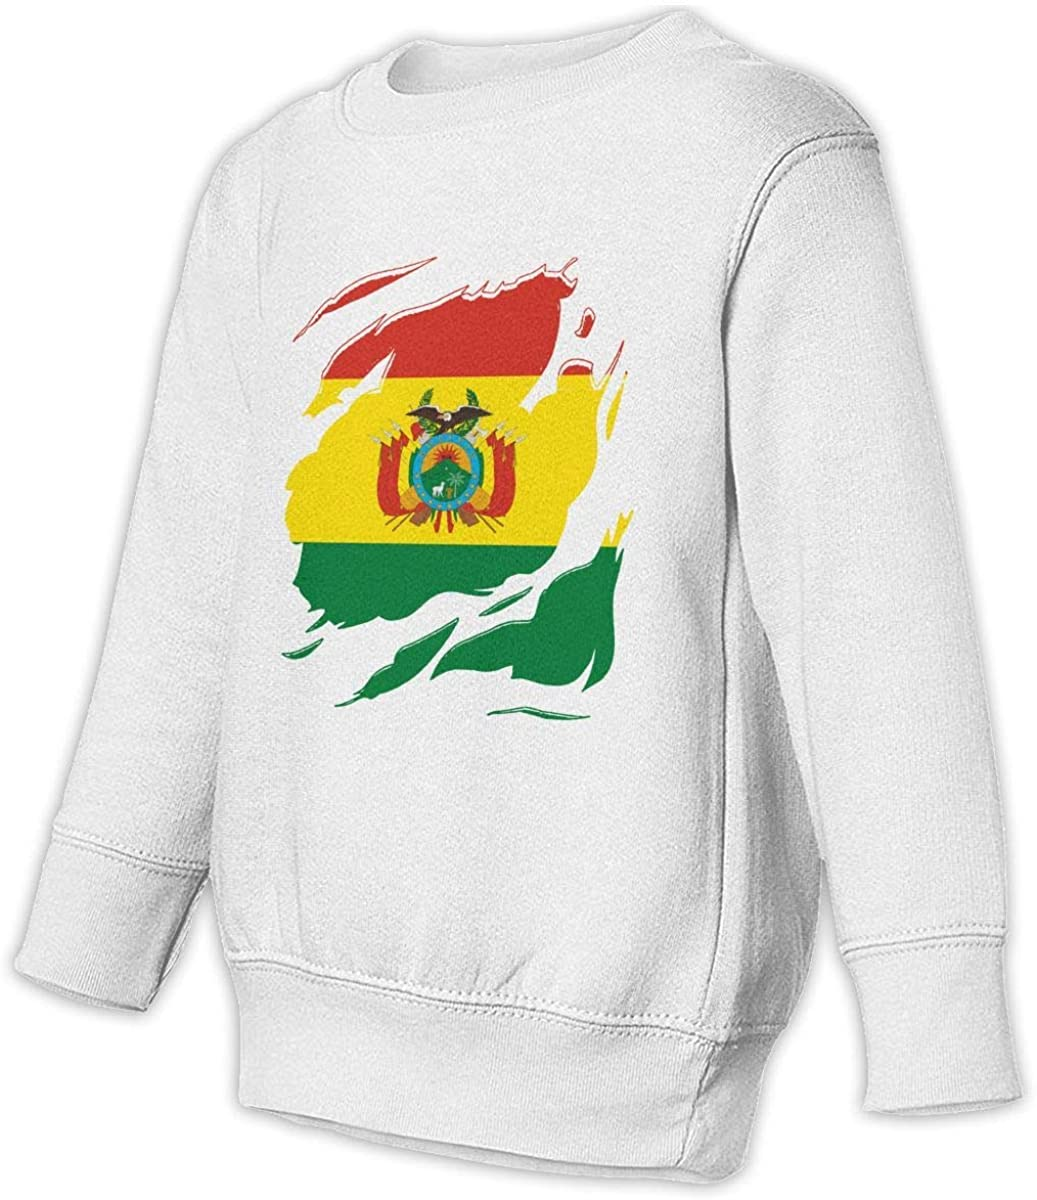 Bolivia National Flag Boys Girls Pullover Sweaters Crewneck Sweatshirts Clothes for 2-6 Years Old Children